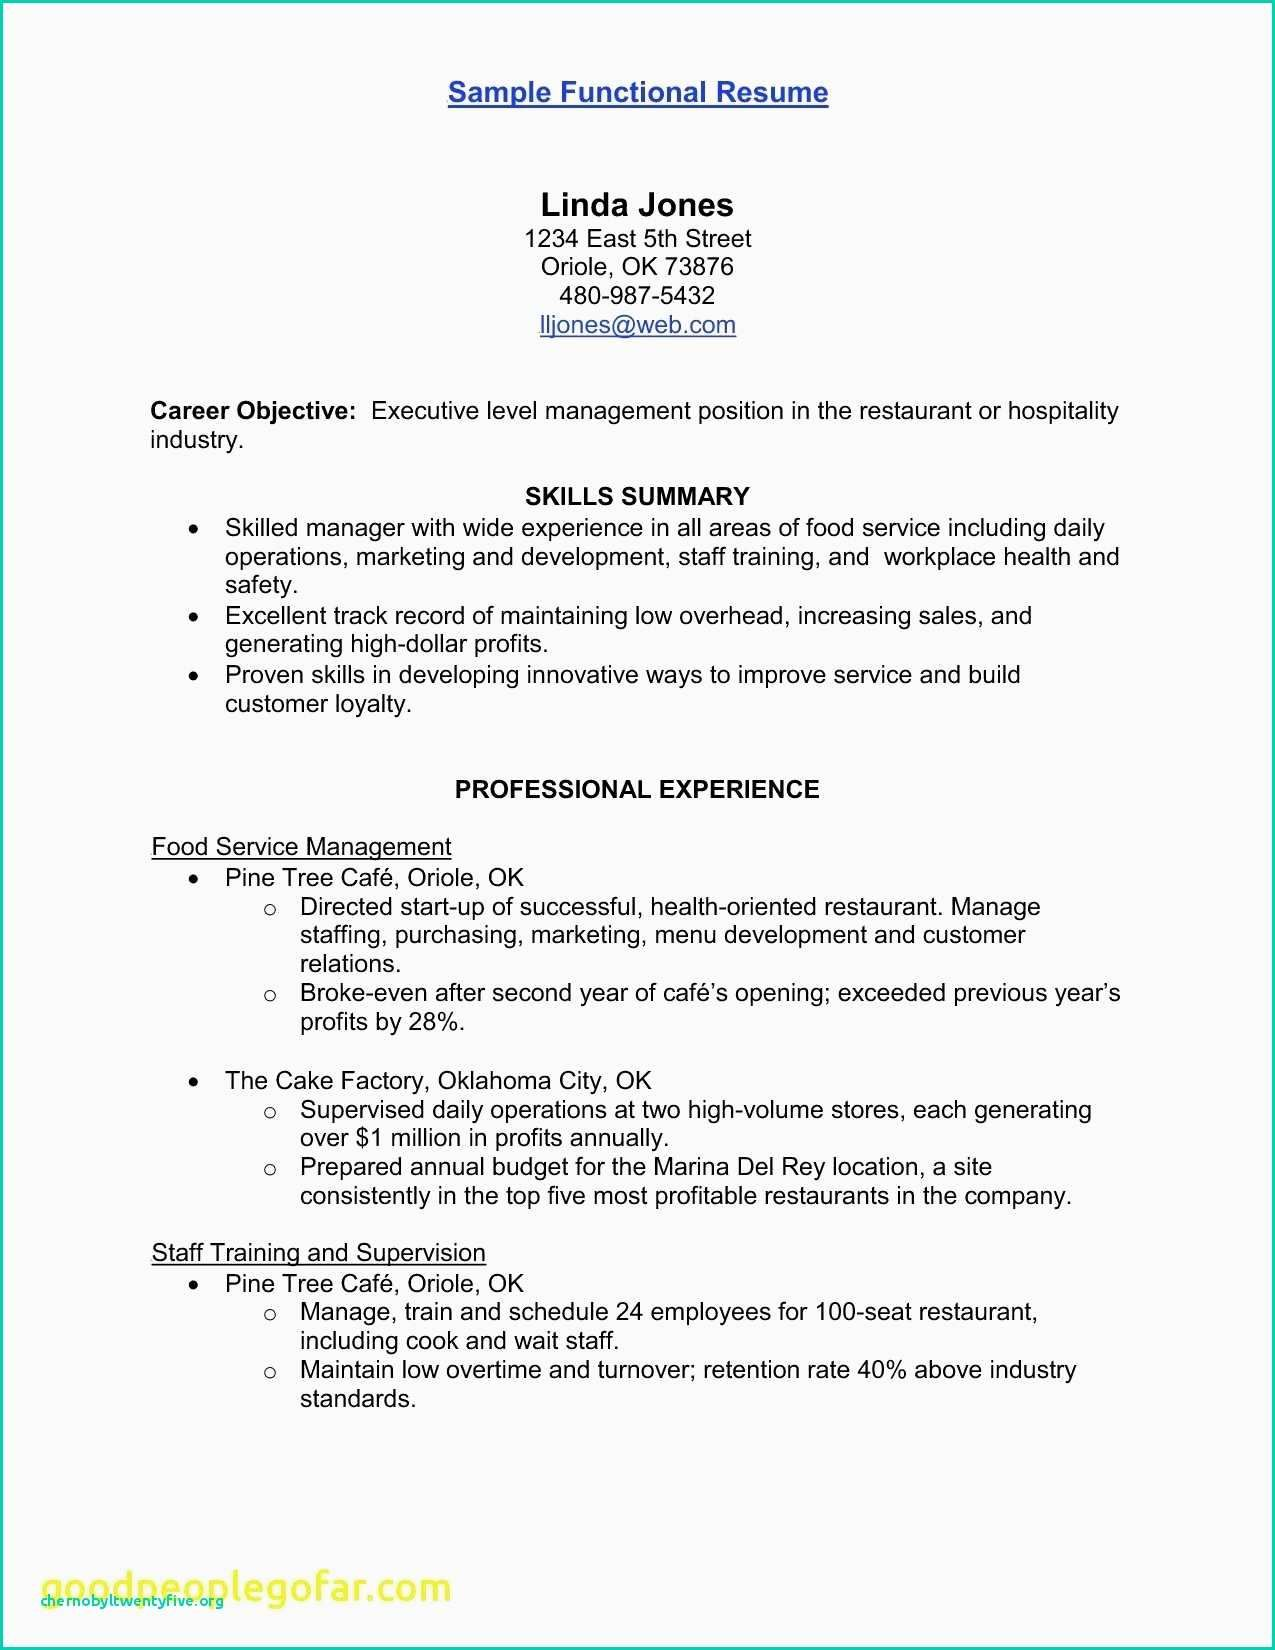 67 Cool Image Of Electrician Resume Examples Australia